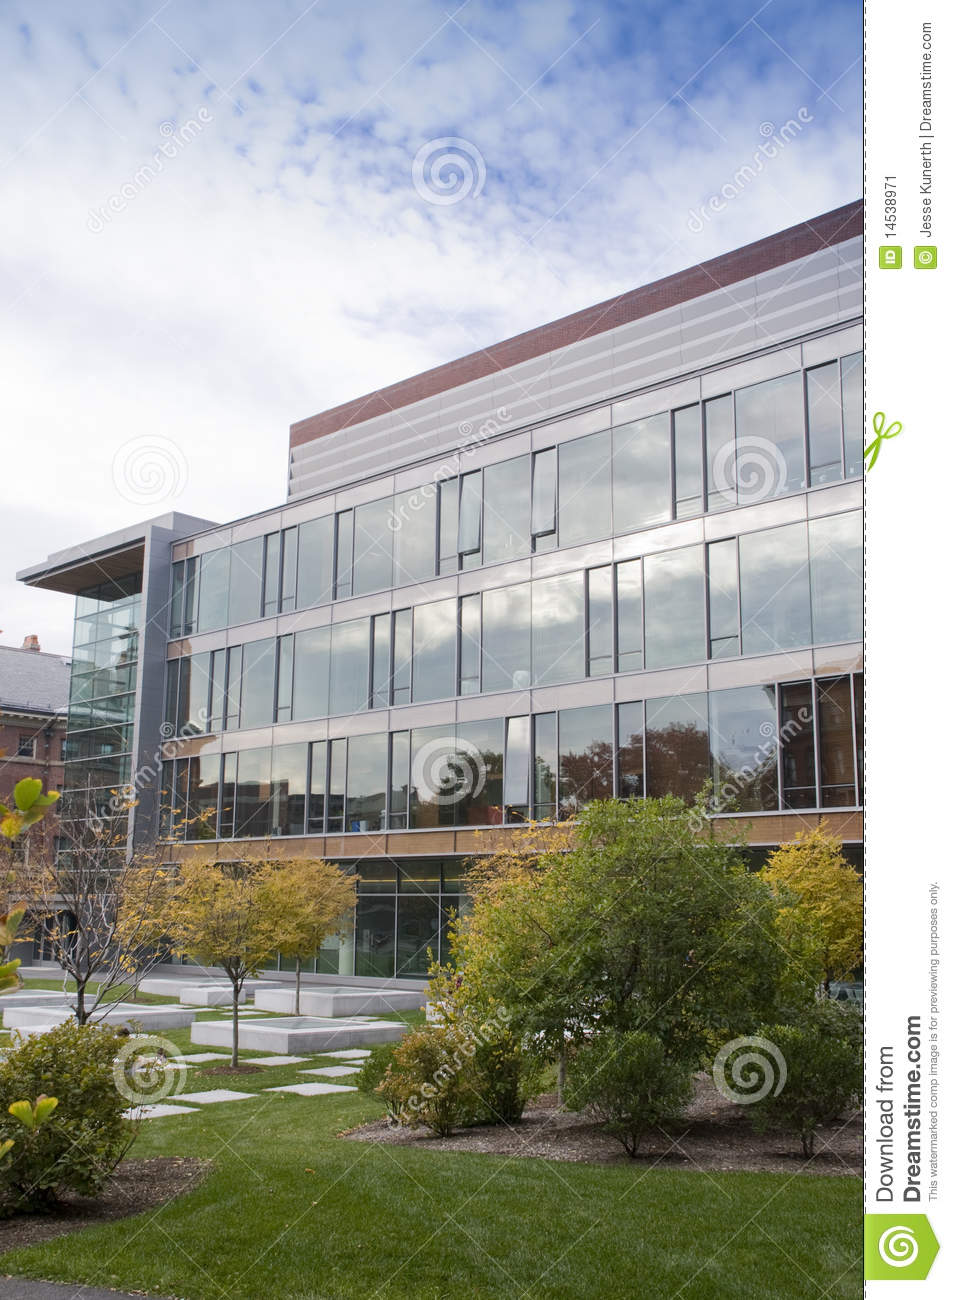 New architecture at harvard stock image image 14538971 for Architecture harvard